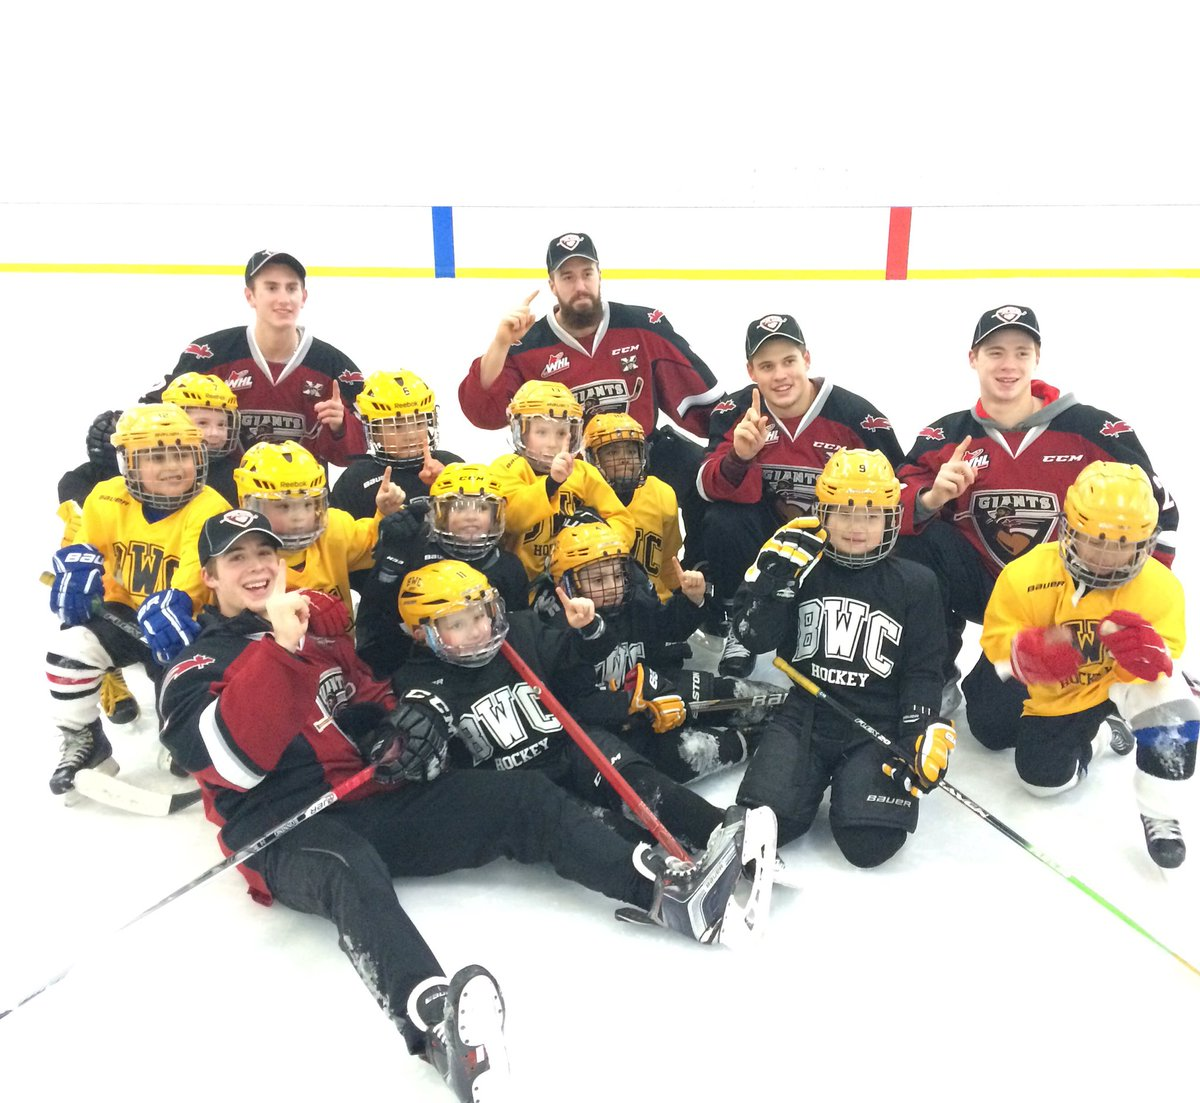 #TBT to when our players surprised these @bwchockey H2 players at hockey practice. Vid coming soon! #BeAGiant https://t.co/k4xuwpAhst